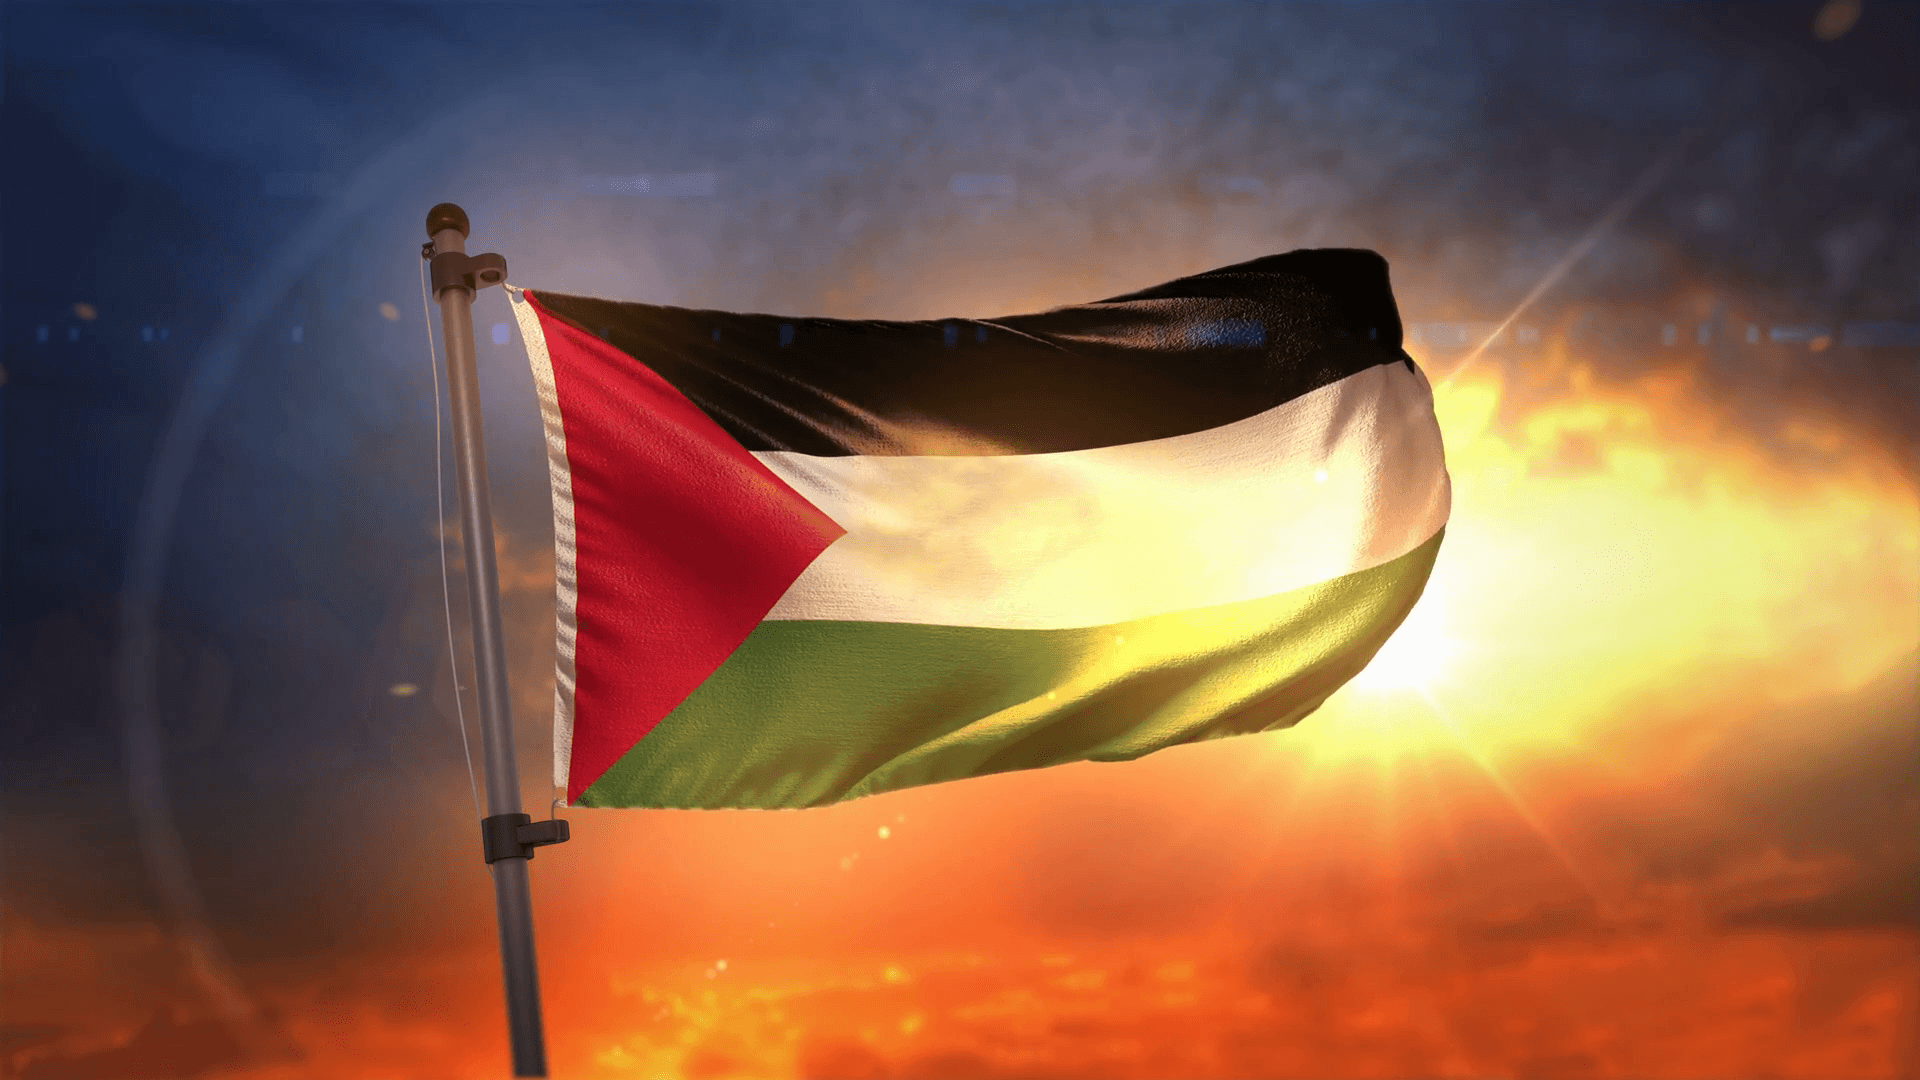 Backgrounds Palestine Flag Image Hd Wallpaper Cave